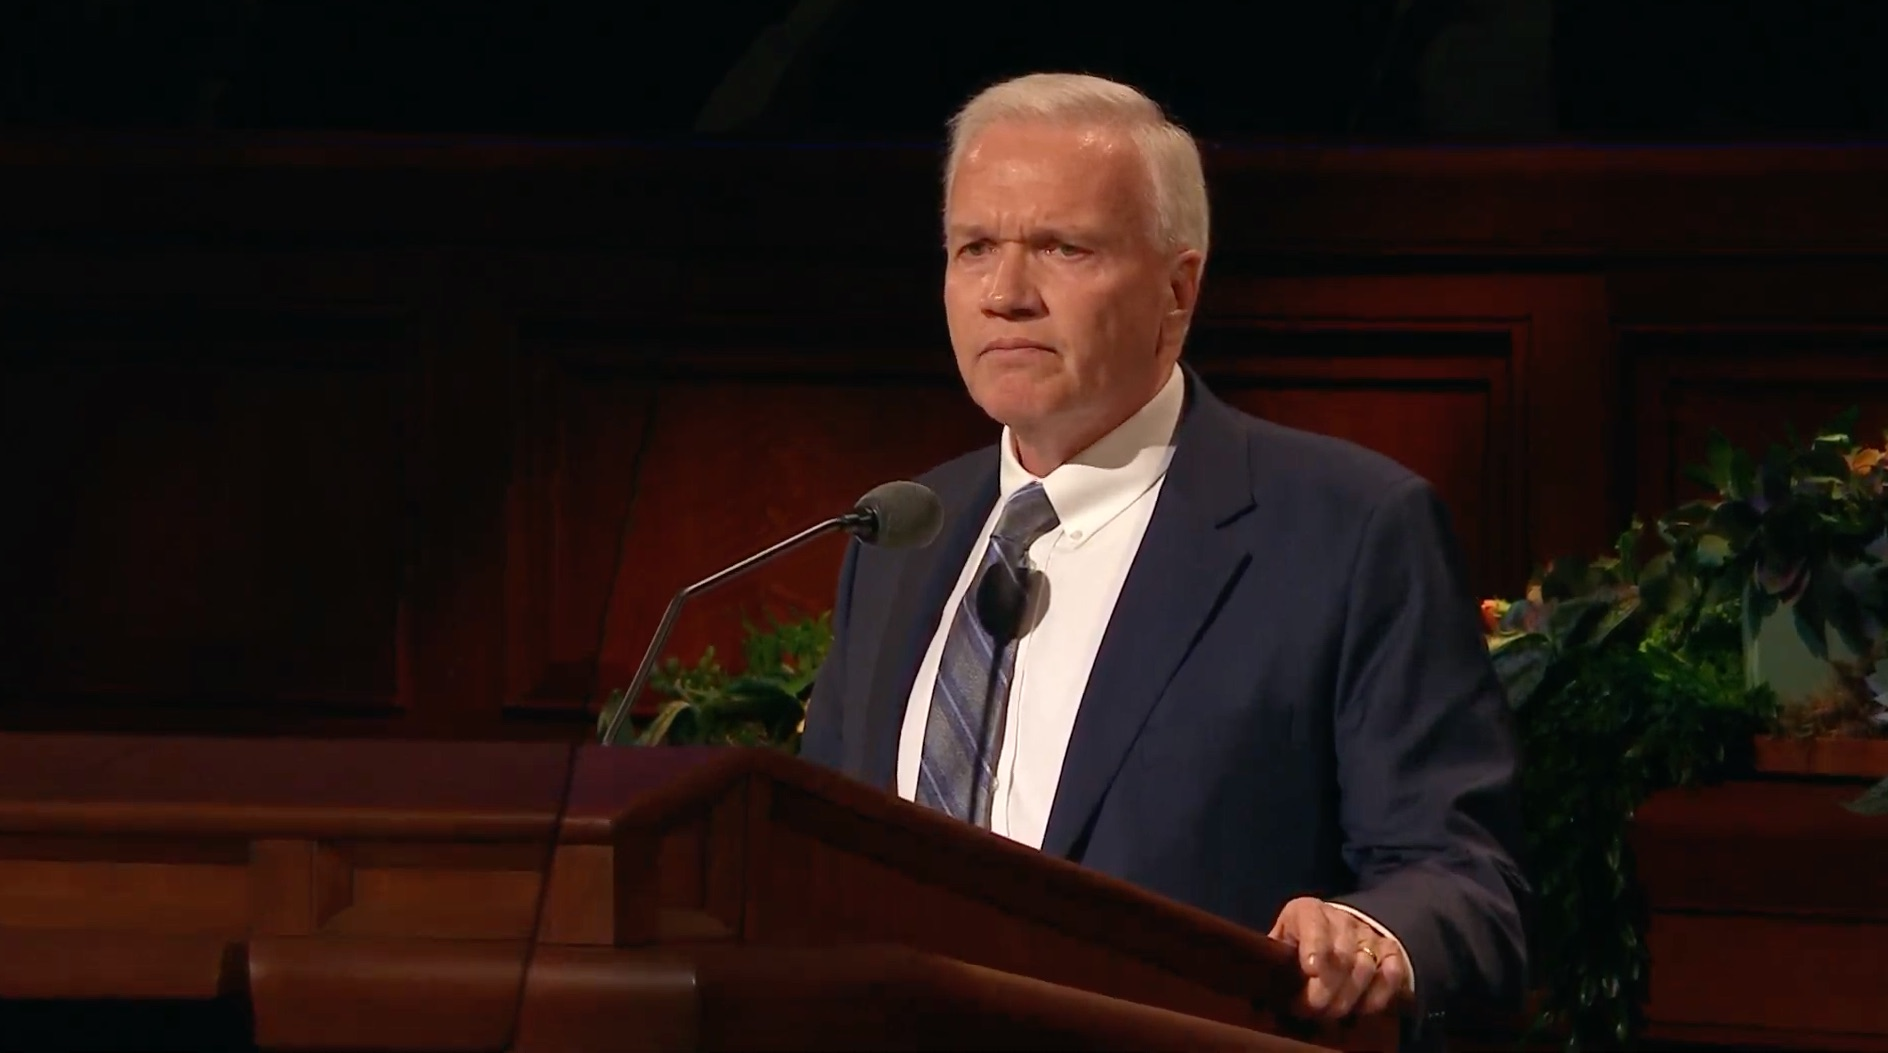 Elder Brook P. Hales gives his address during the Saturday morning session of the 189th Annual General Conference on April 6, 2019.